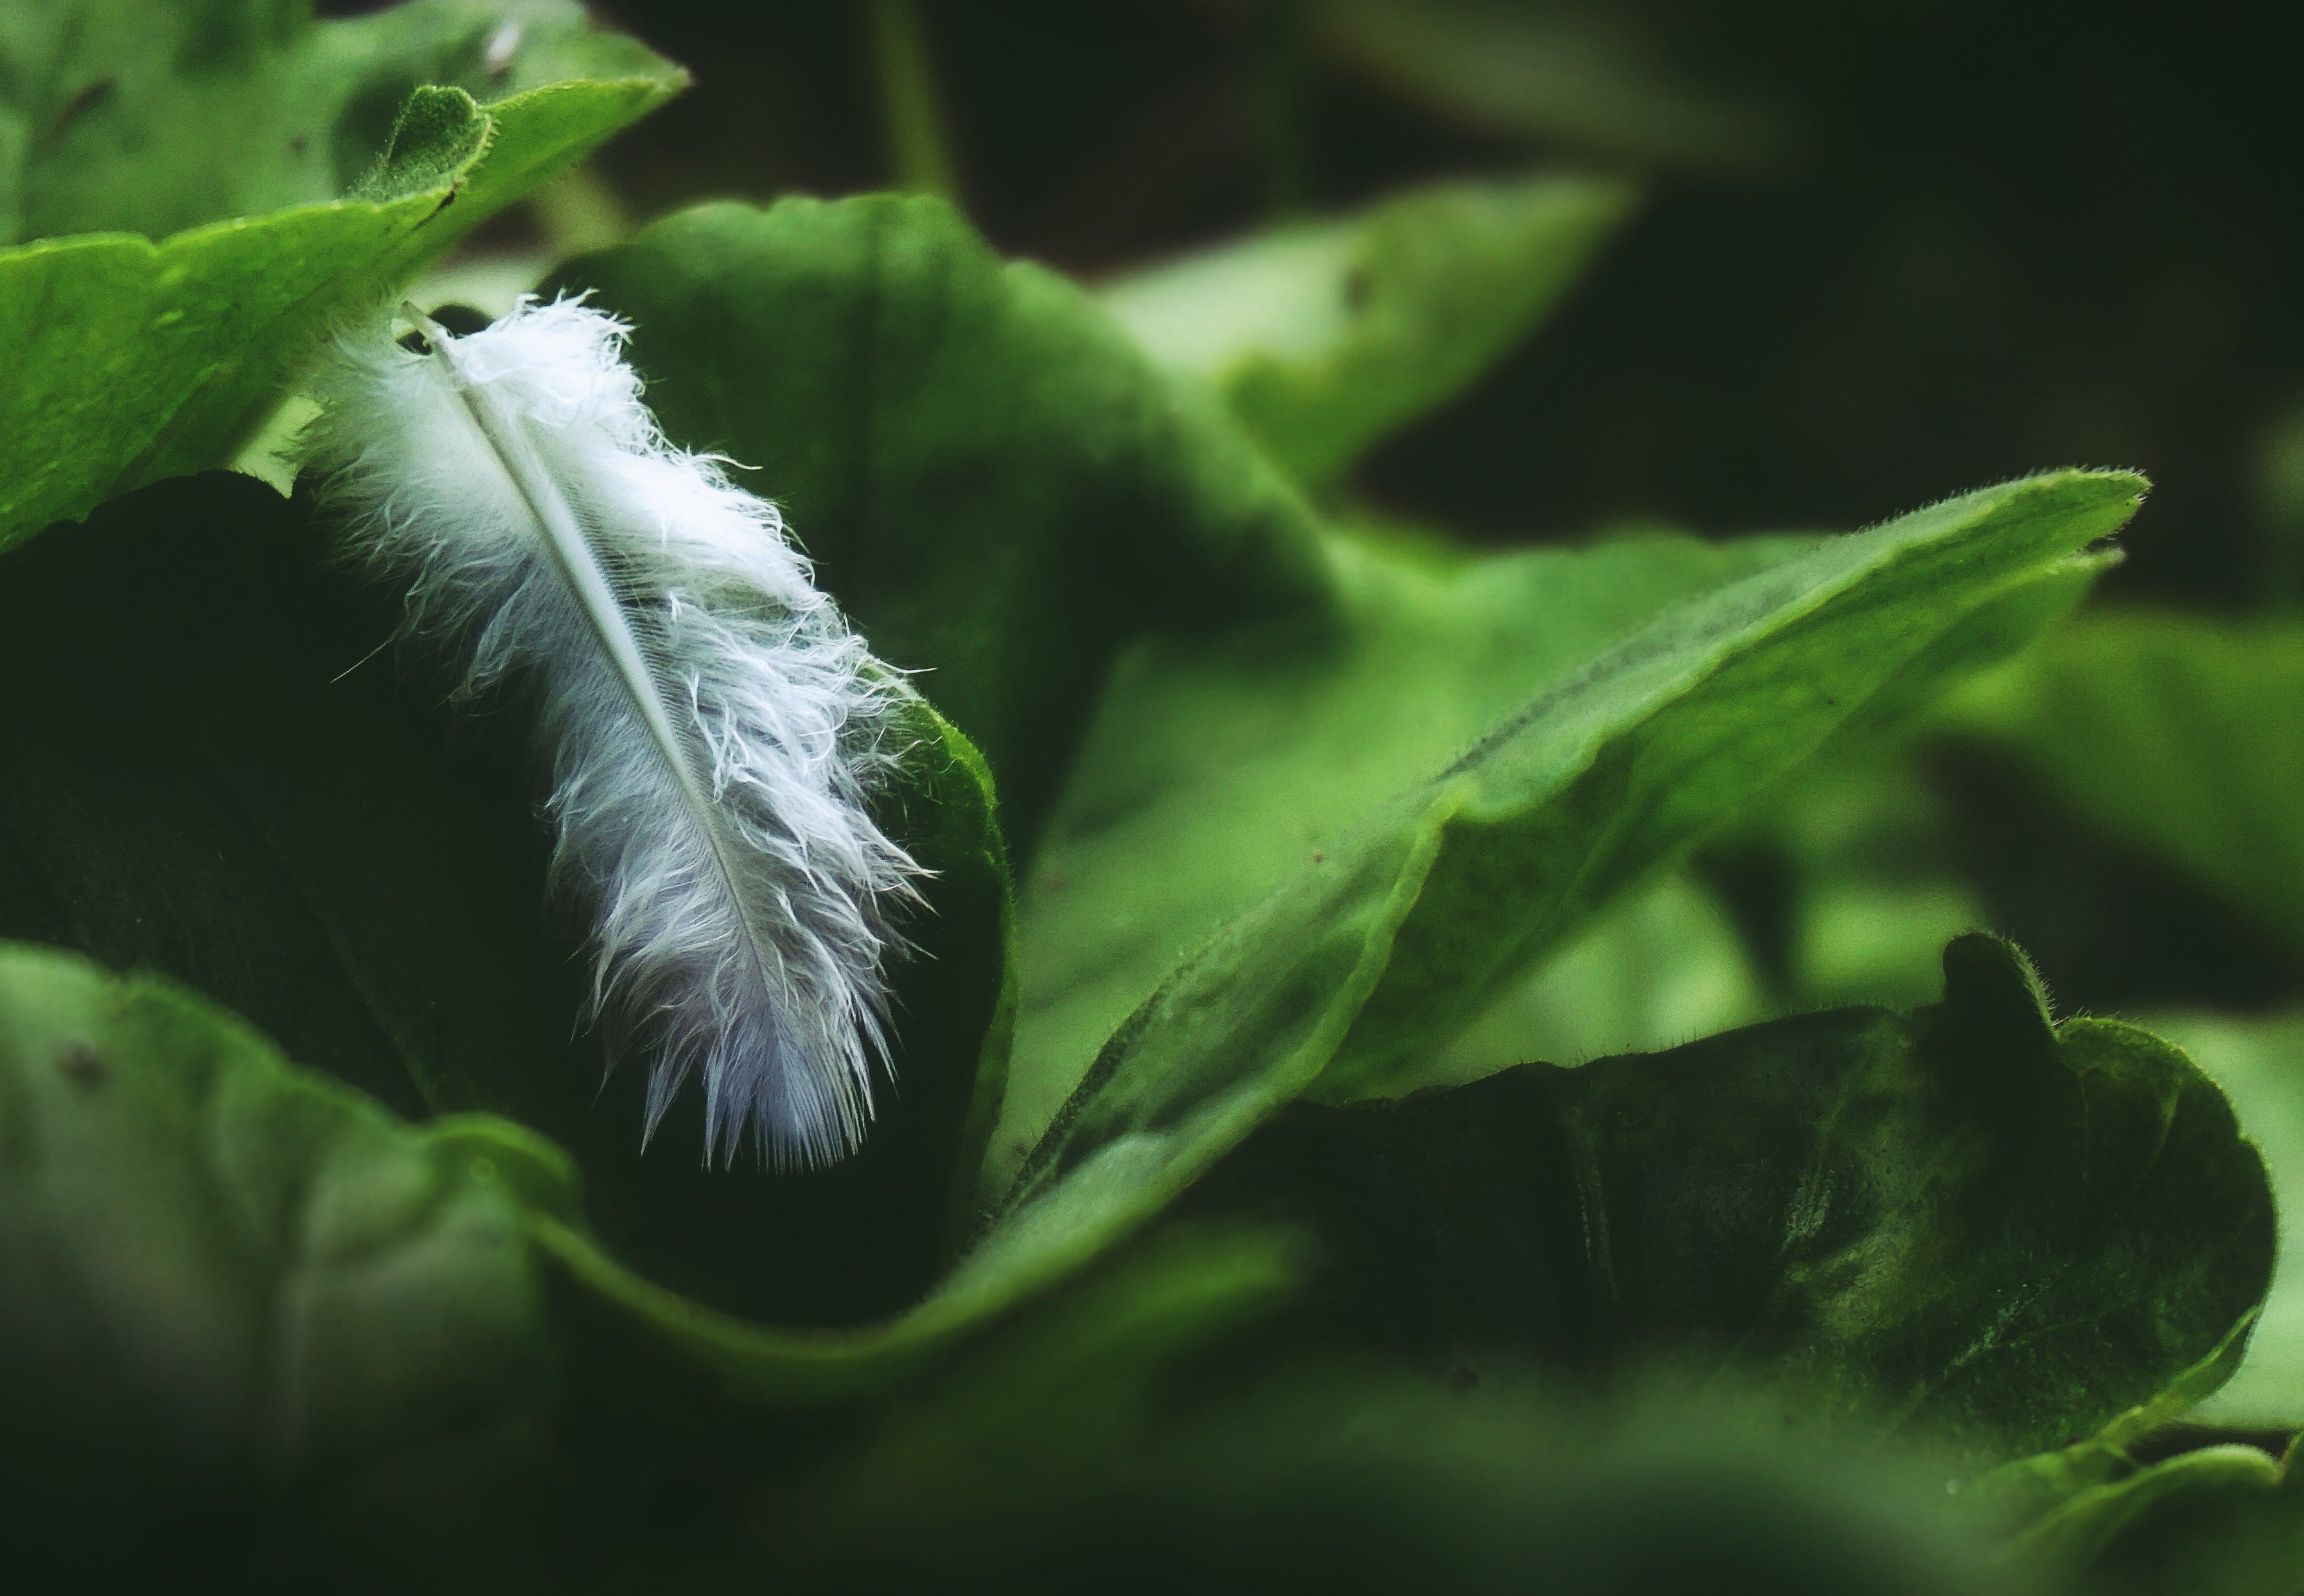 Closeup Photo of White Feather on Green Leaf